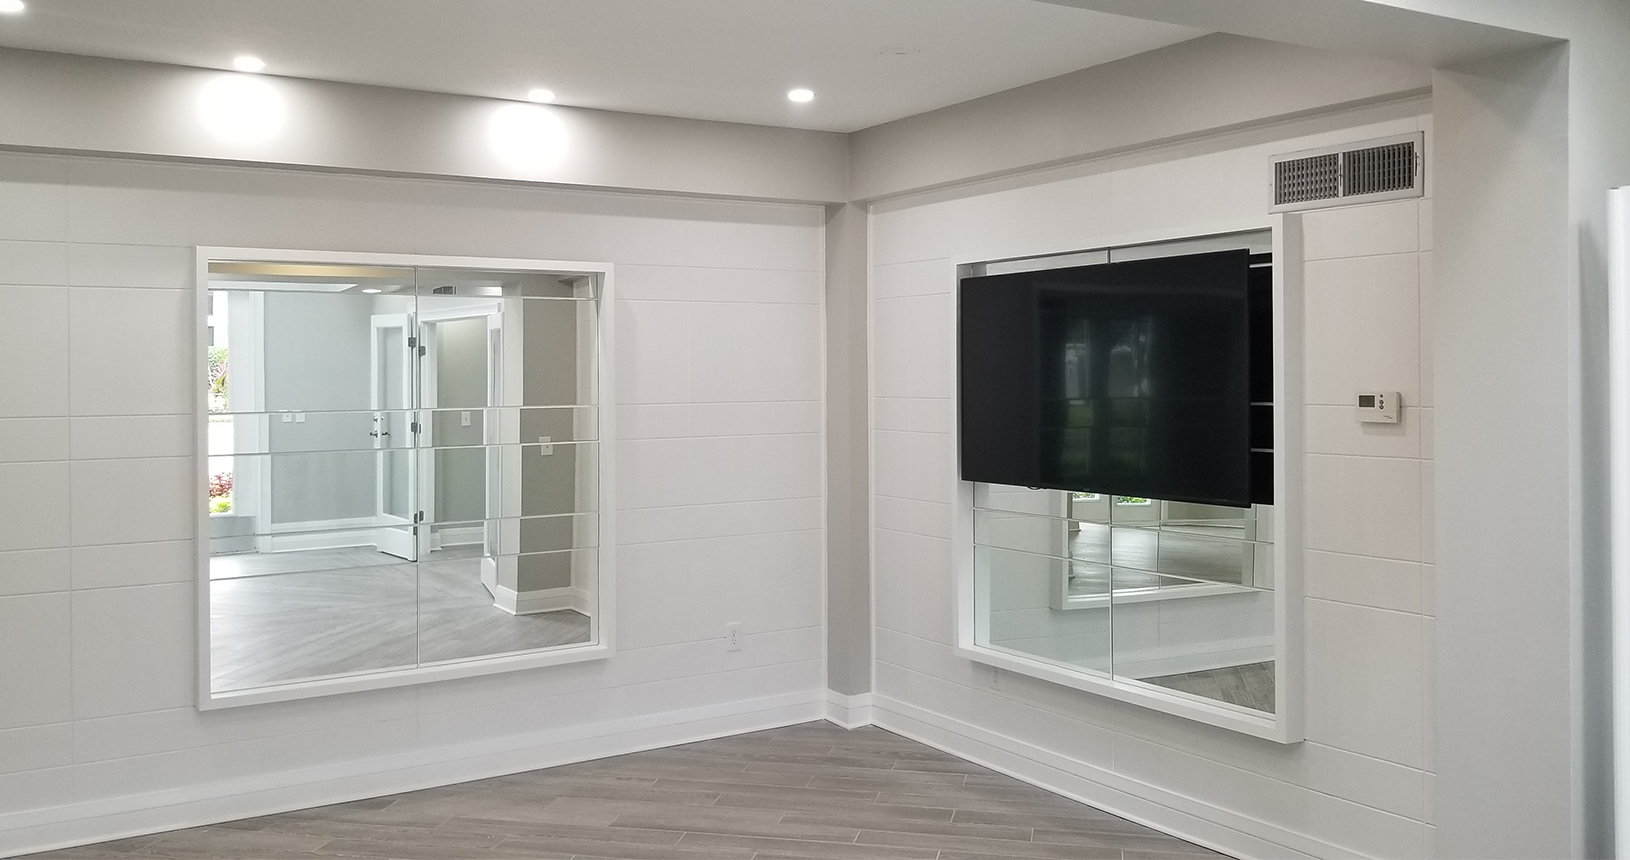 Arbors at Carrollwood interior renovations with mirrors